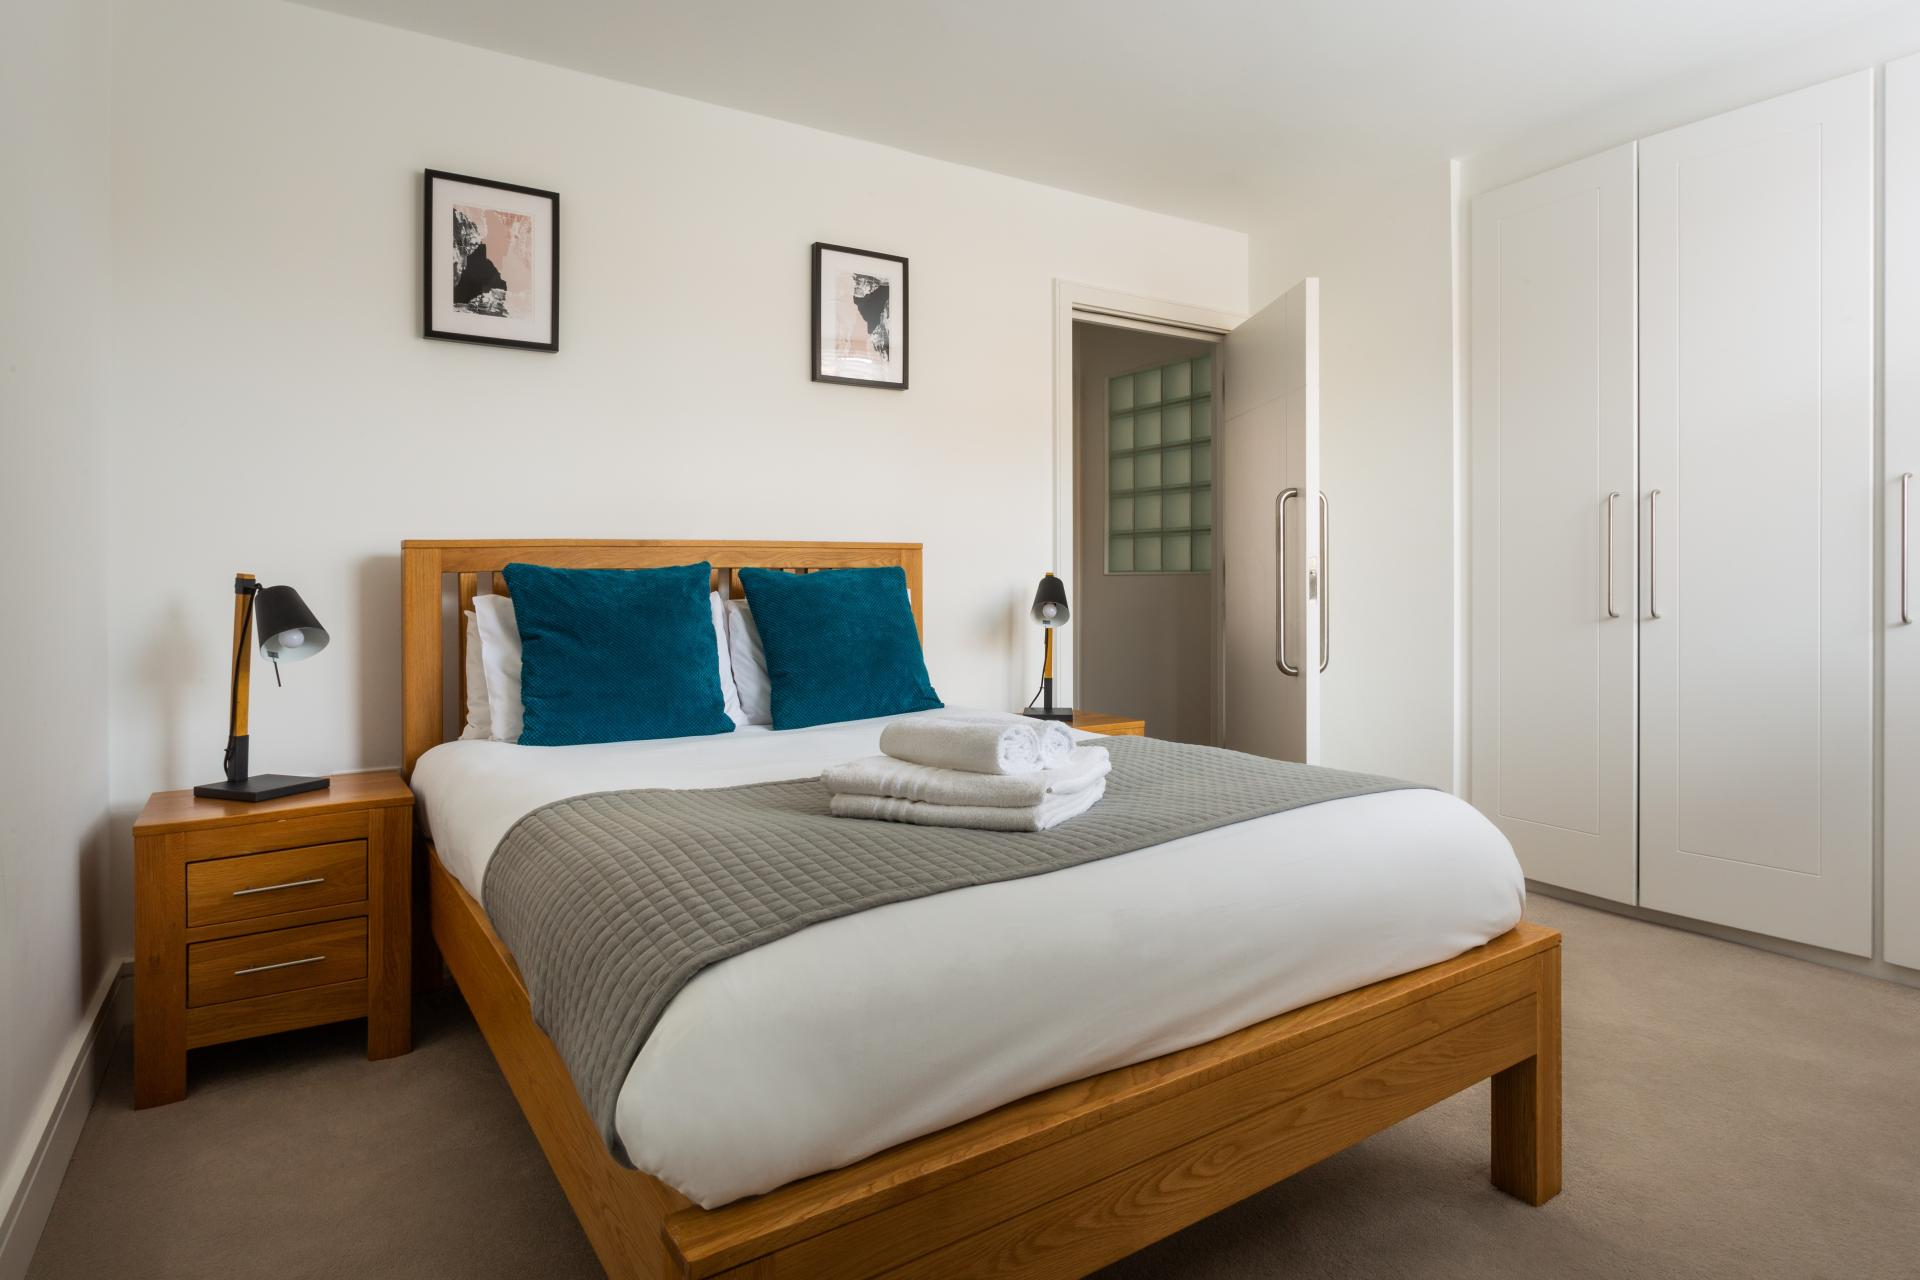 Bedroom at Flying Butler Vincent Square Apartments, Victoria, London